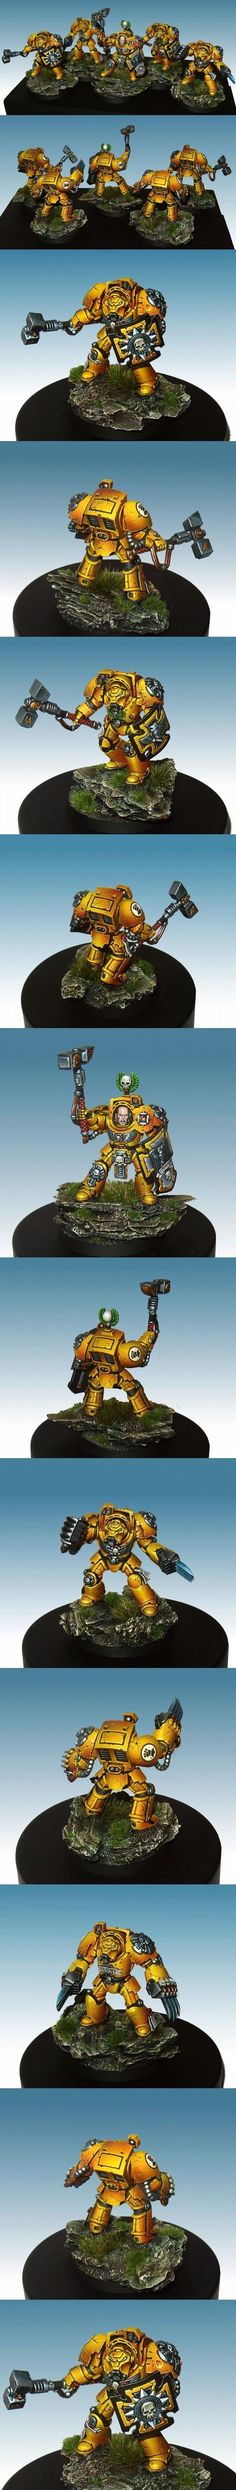 Imperial Fists Terminator Assault squad